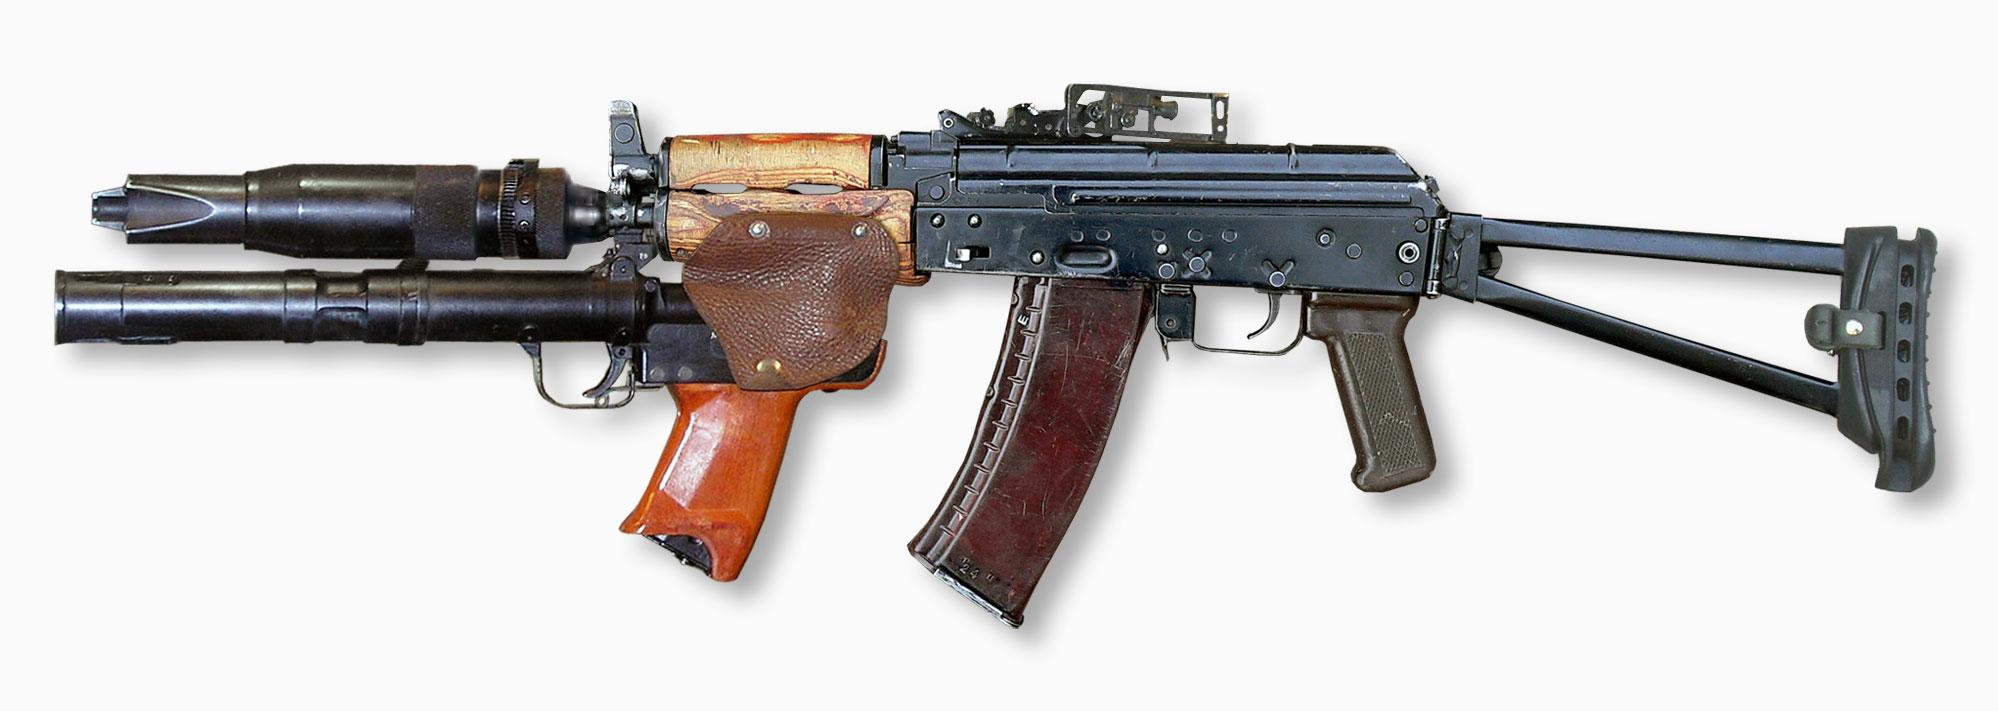 BS-1 grenade launcher 30mm mounted on AKS-74UB